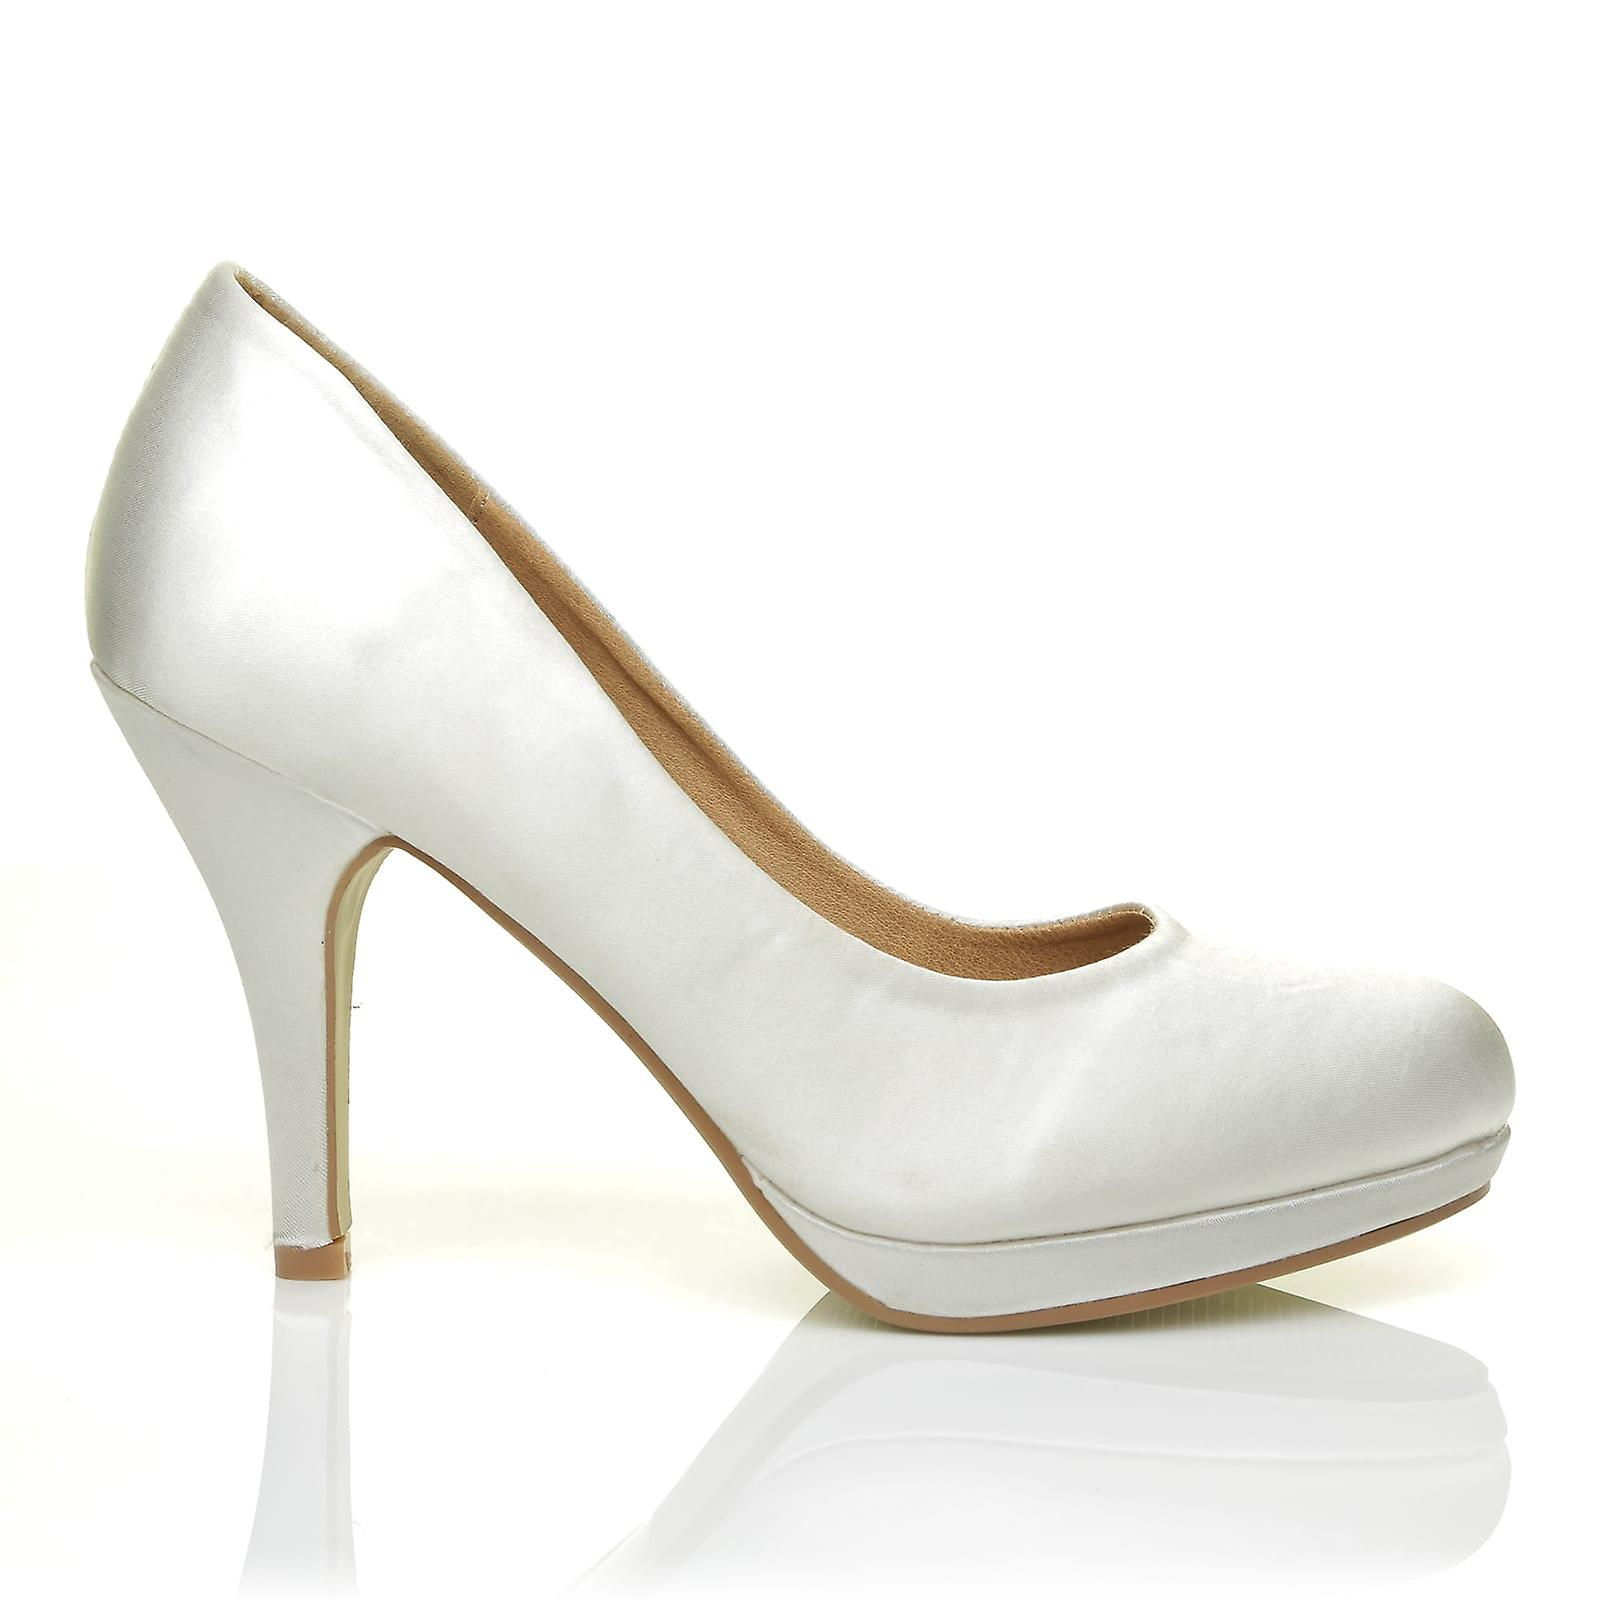 CHIP Off White Satin Leather Pumps Court Mid-High Heel Low Platform Court Pumps Shoes 398136